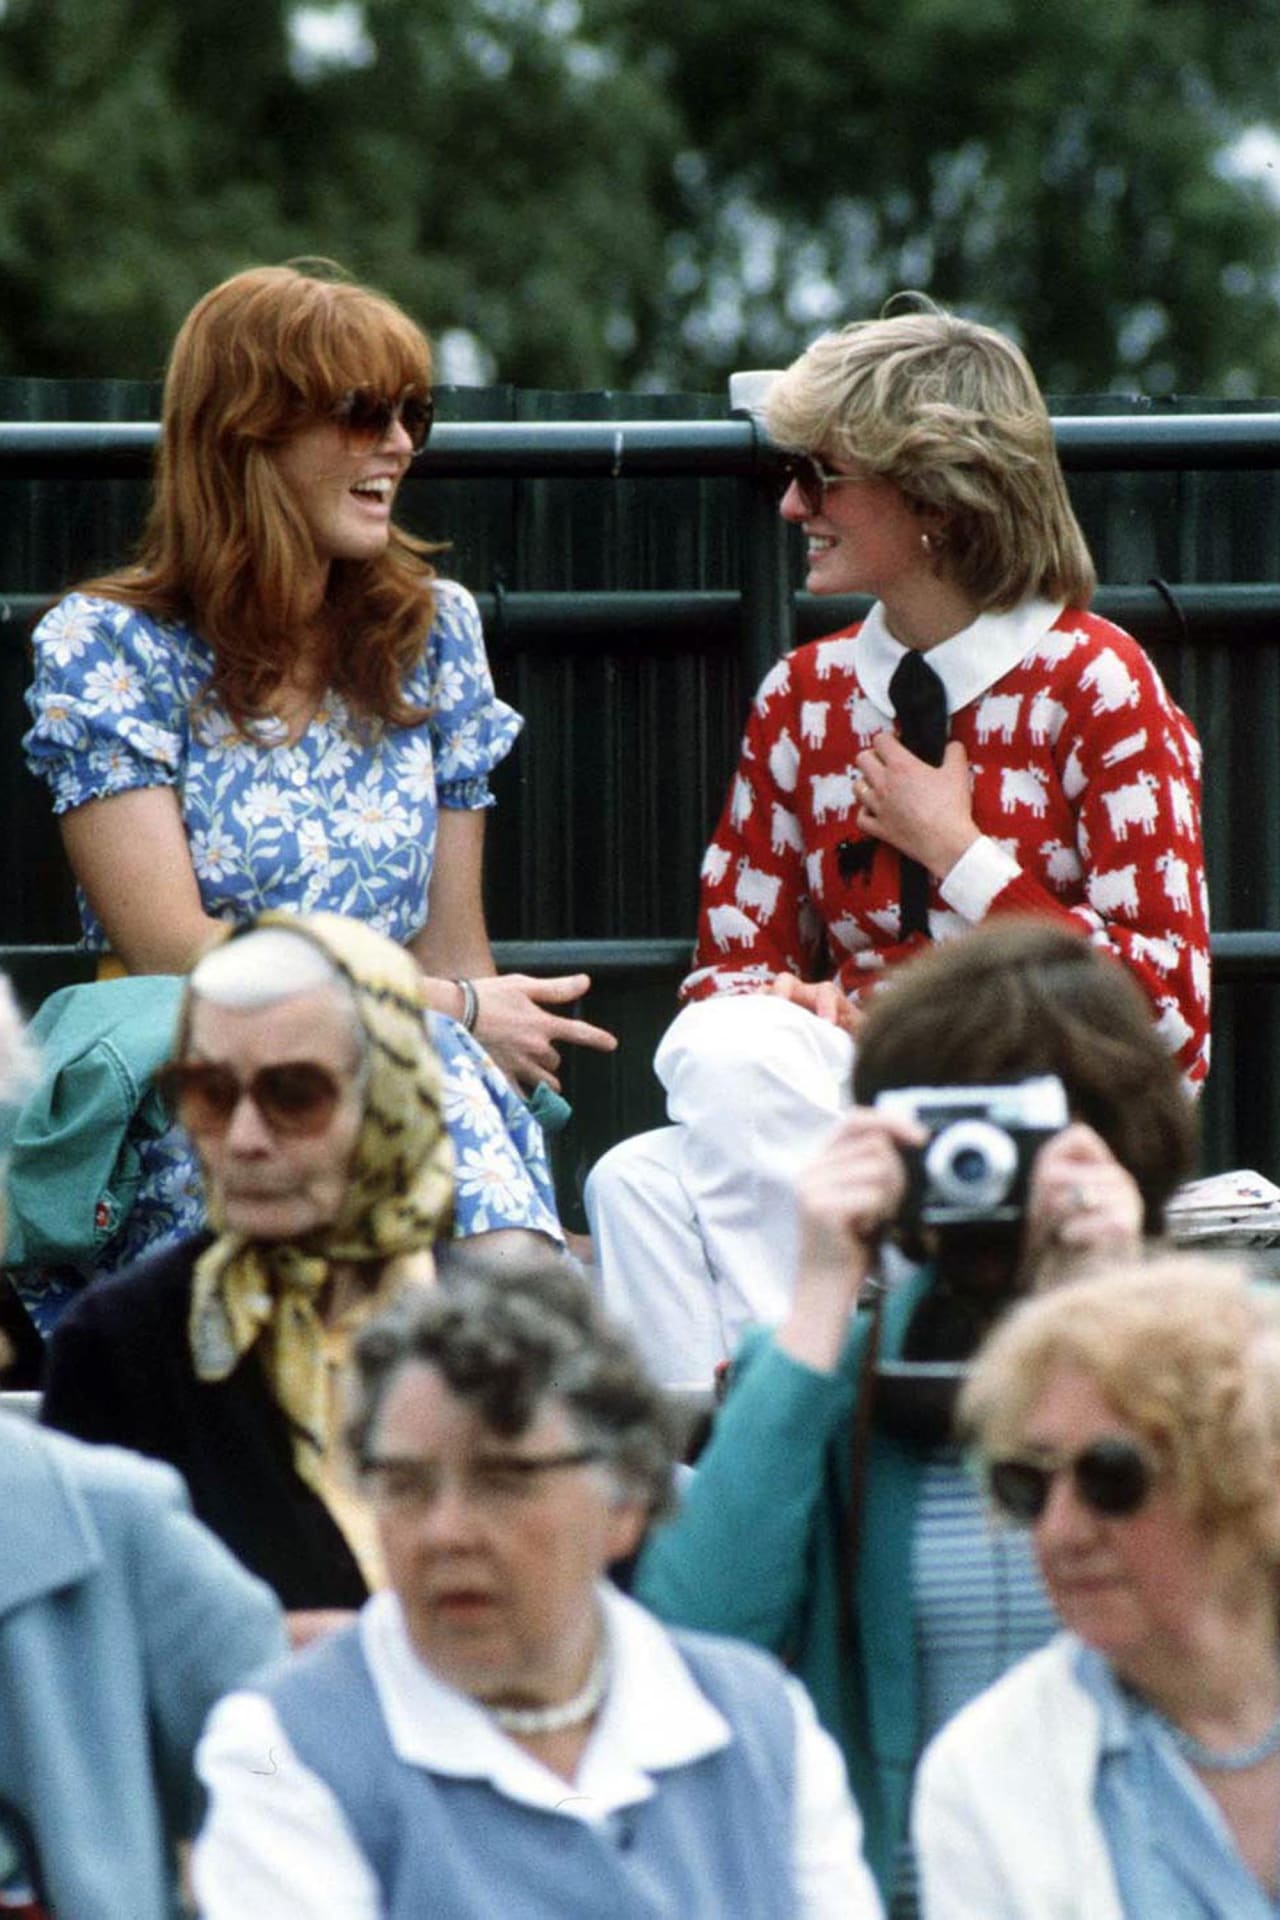 Sarah Ferguson addresses the rumours regarding her relationship with Princess Diana